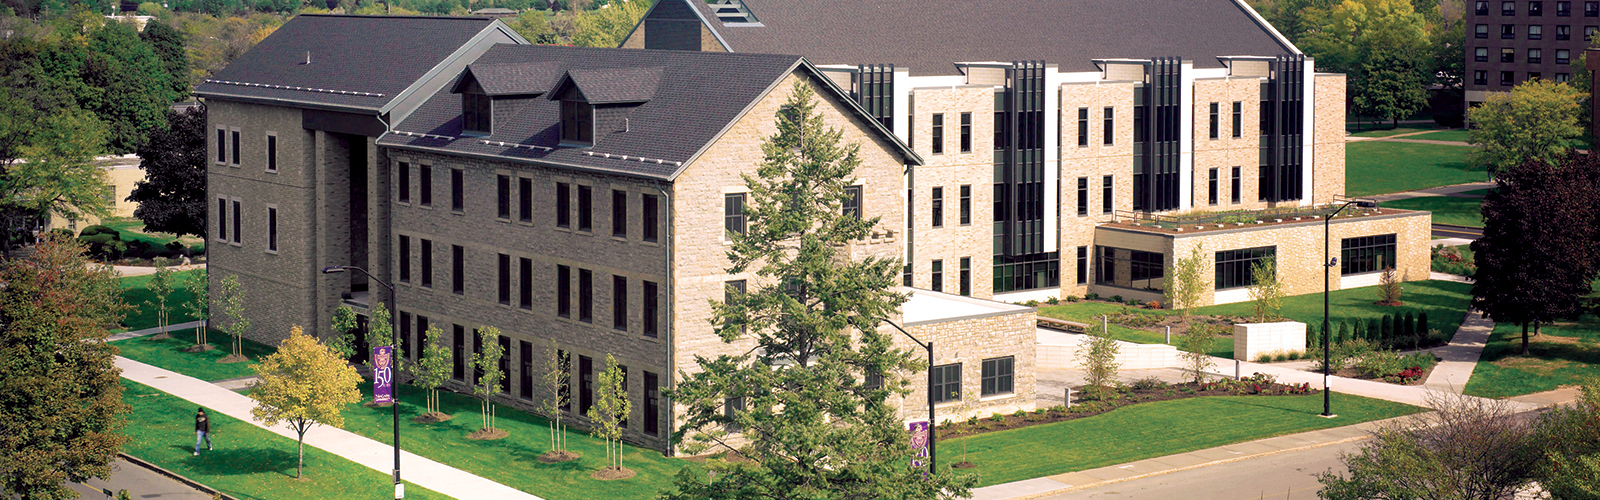 NU's Bisgrove Hall, home to the College of Business.